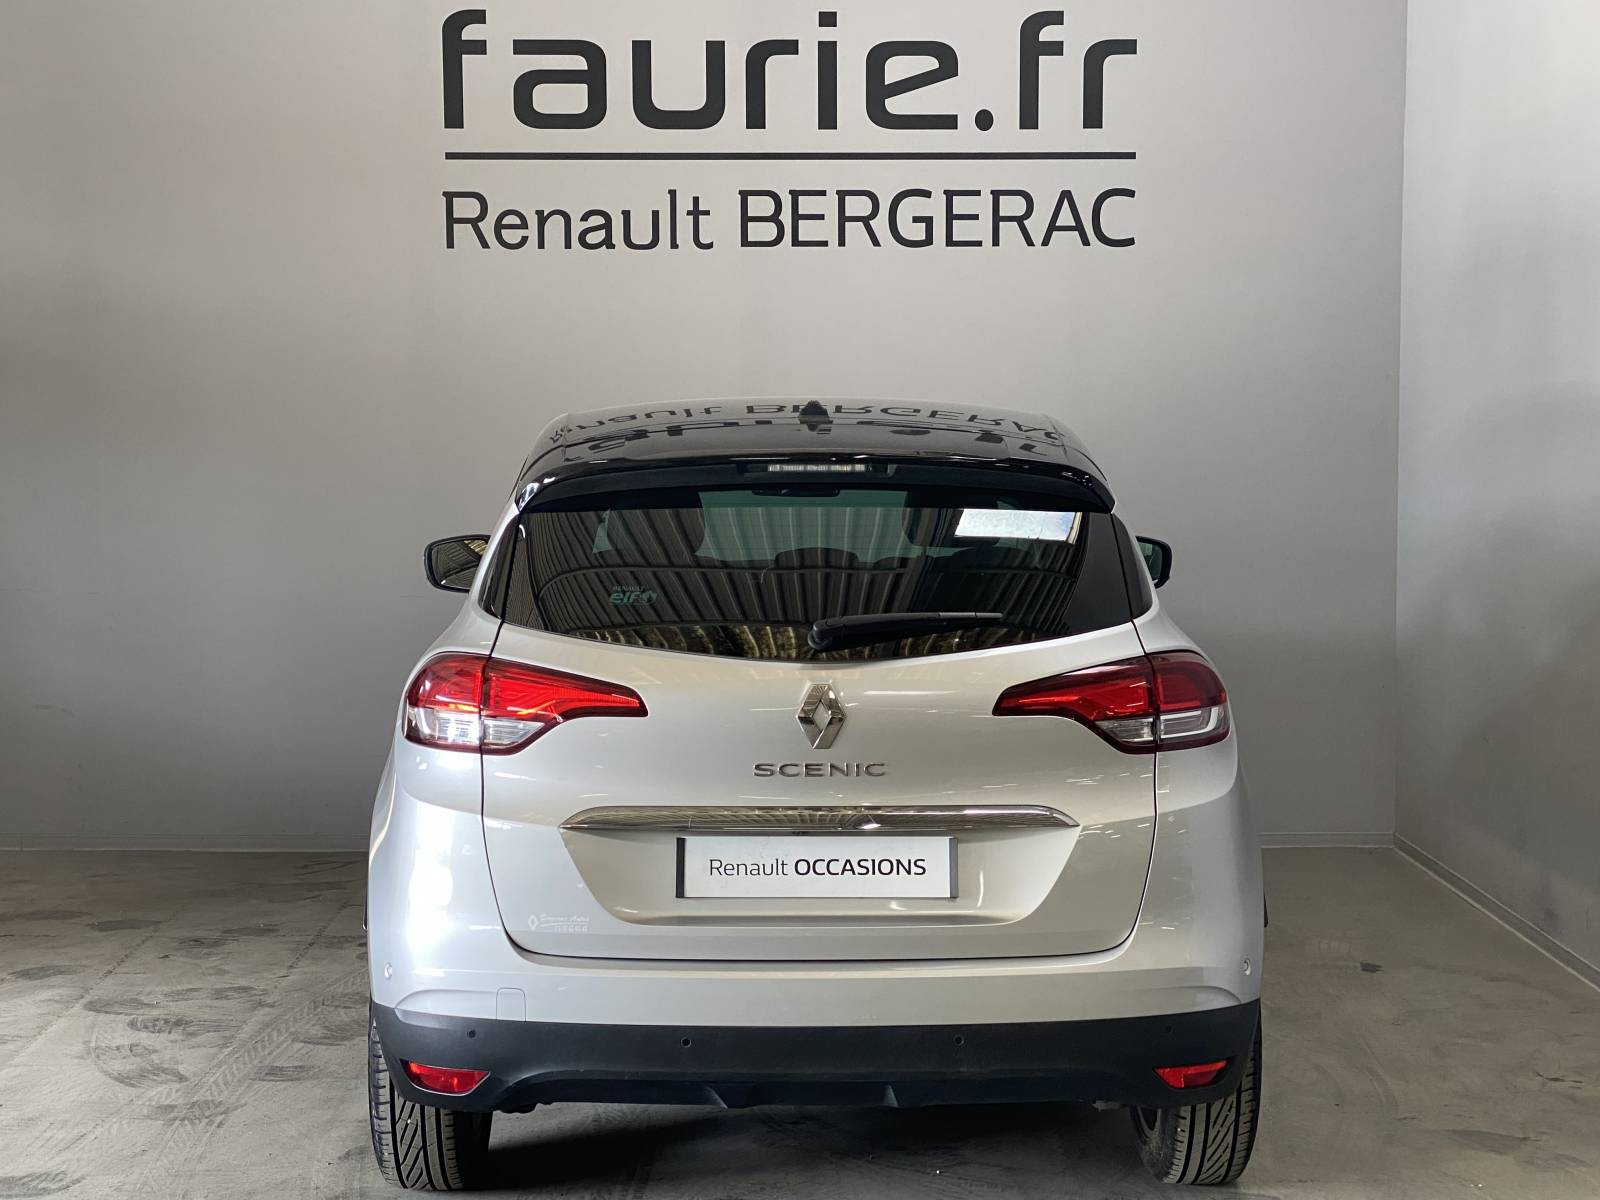 RENAULT Scenic dCi 130 Energy - véhicule d'occasion - Site Internet Faurie - Renault - Faurie Auto Bergerac - 24100 - Bergerac - 6